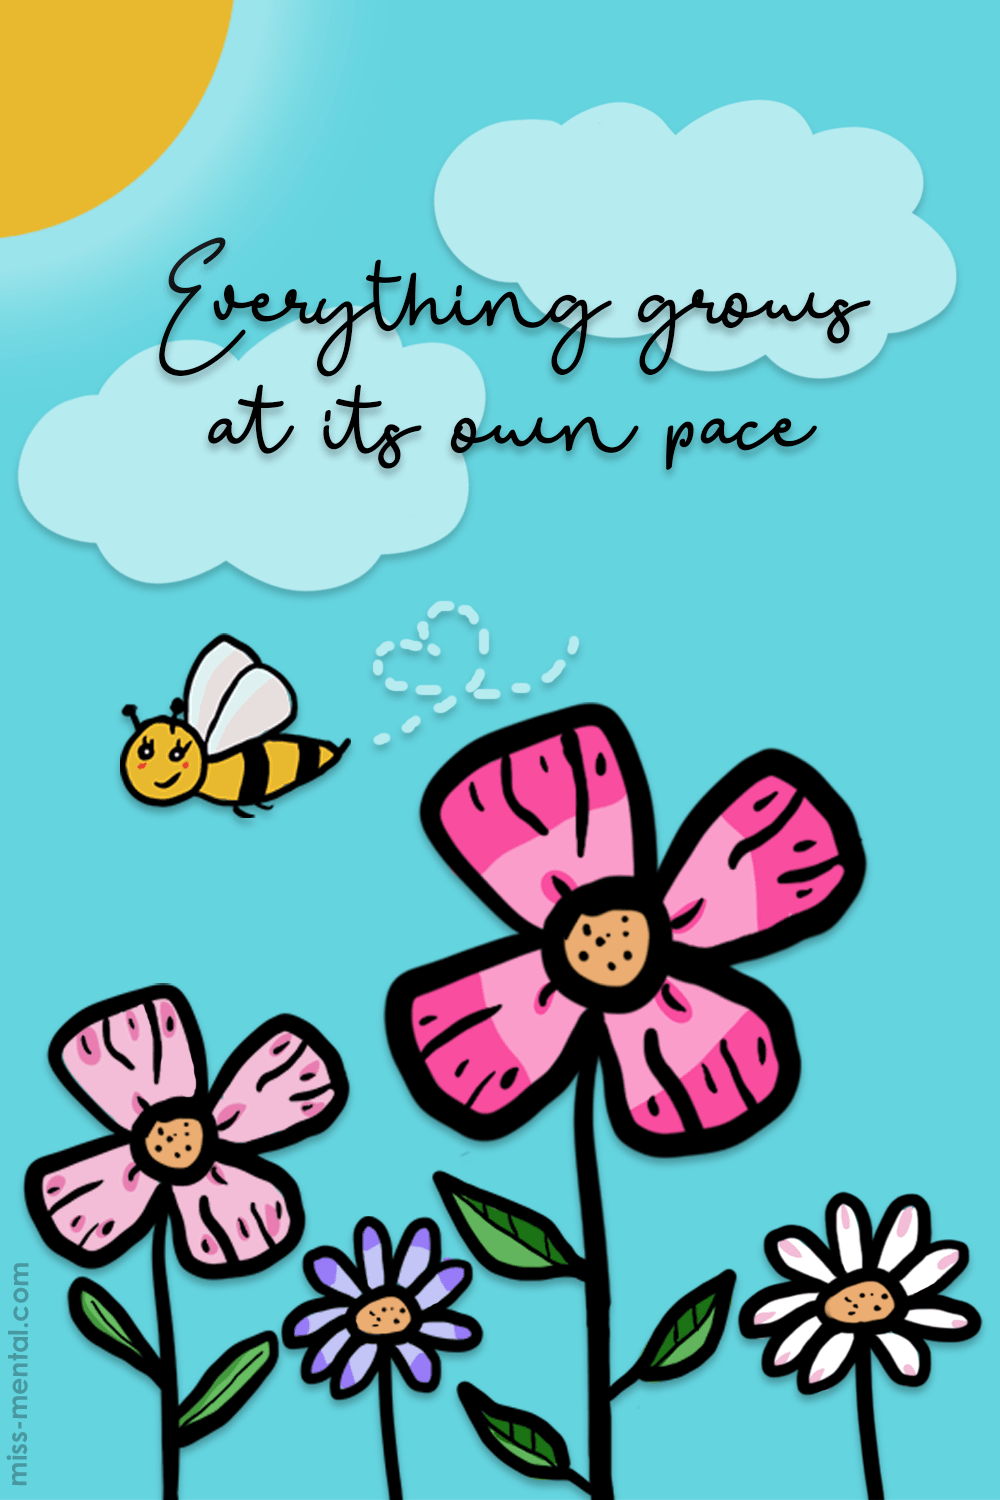 Everything grows at it's own pace quote illustration made by miss mental. Mentalhealth and personal development blog full of positive vibes. Flowers, bee's, sun, clouds, warm summer day. summer illustration, flower illustration, positive vibes #illustration #quote #positivity